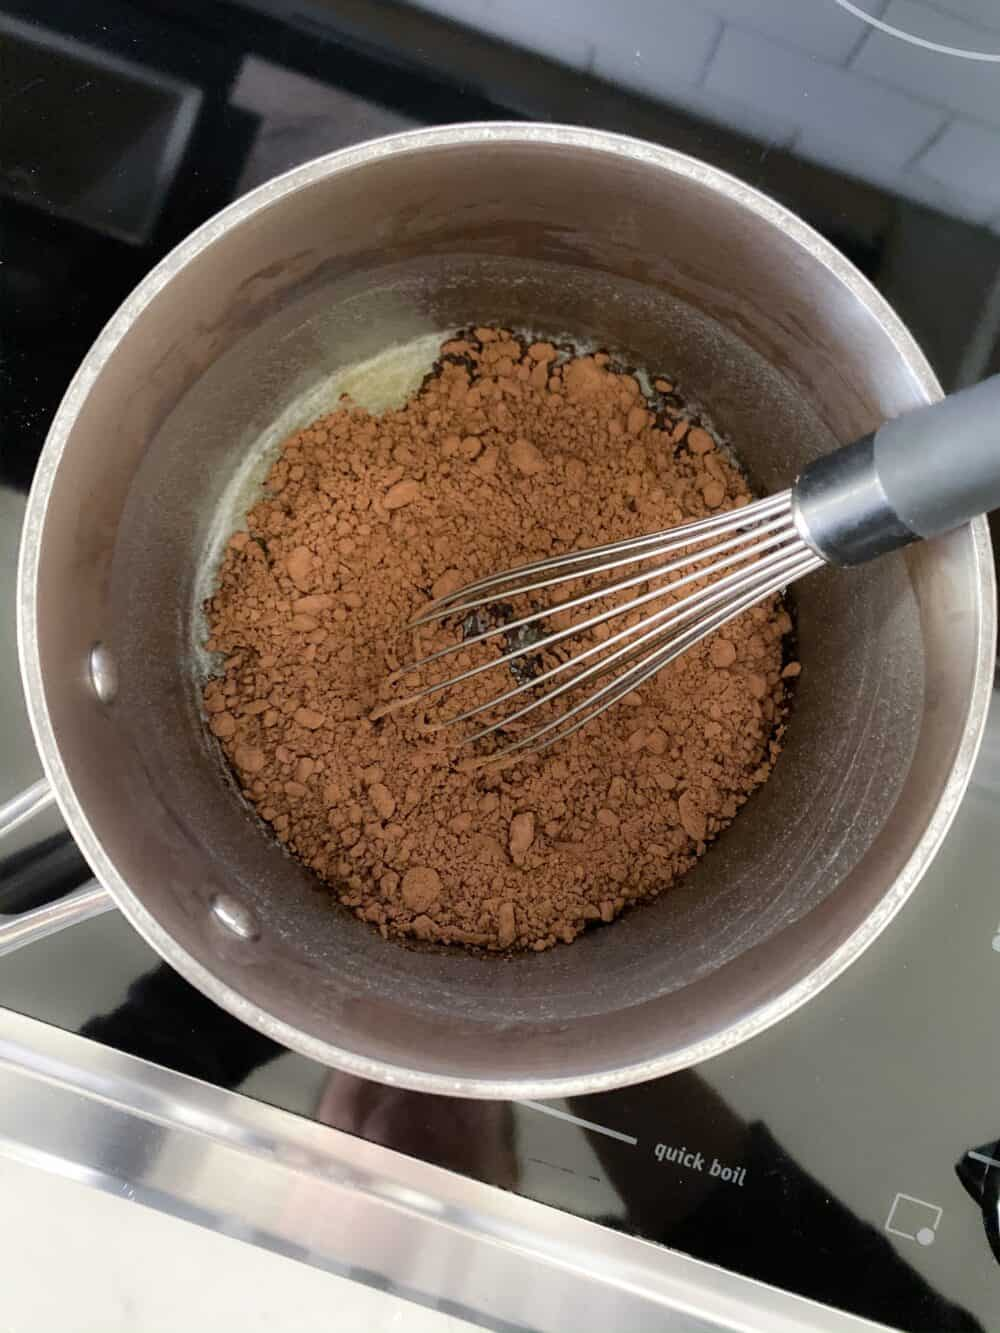 chocolate in mixing bowl for homemade chocolate frosting